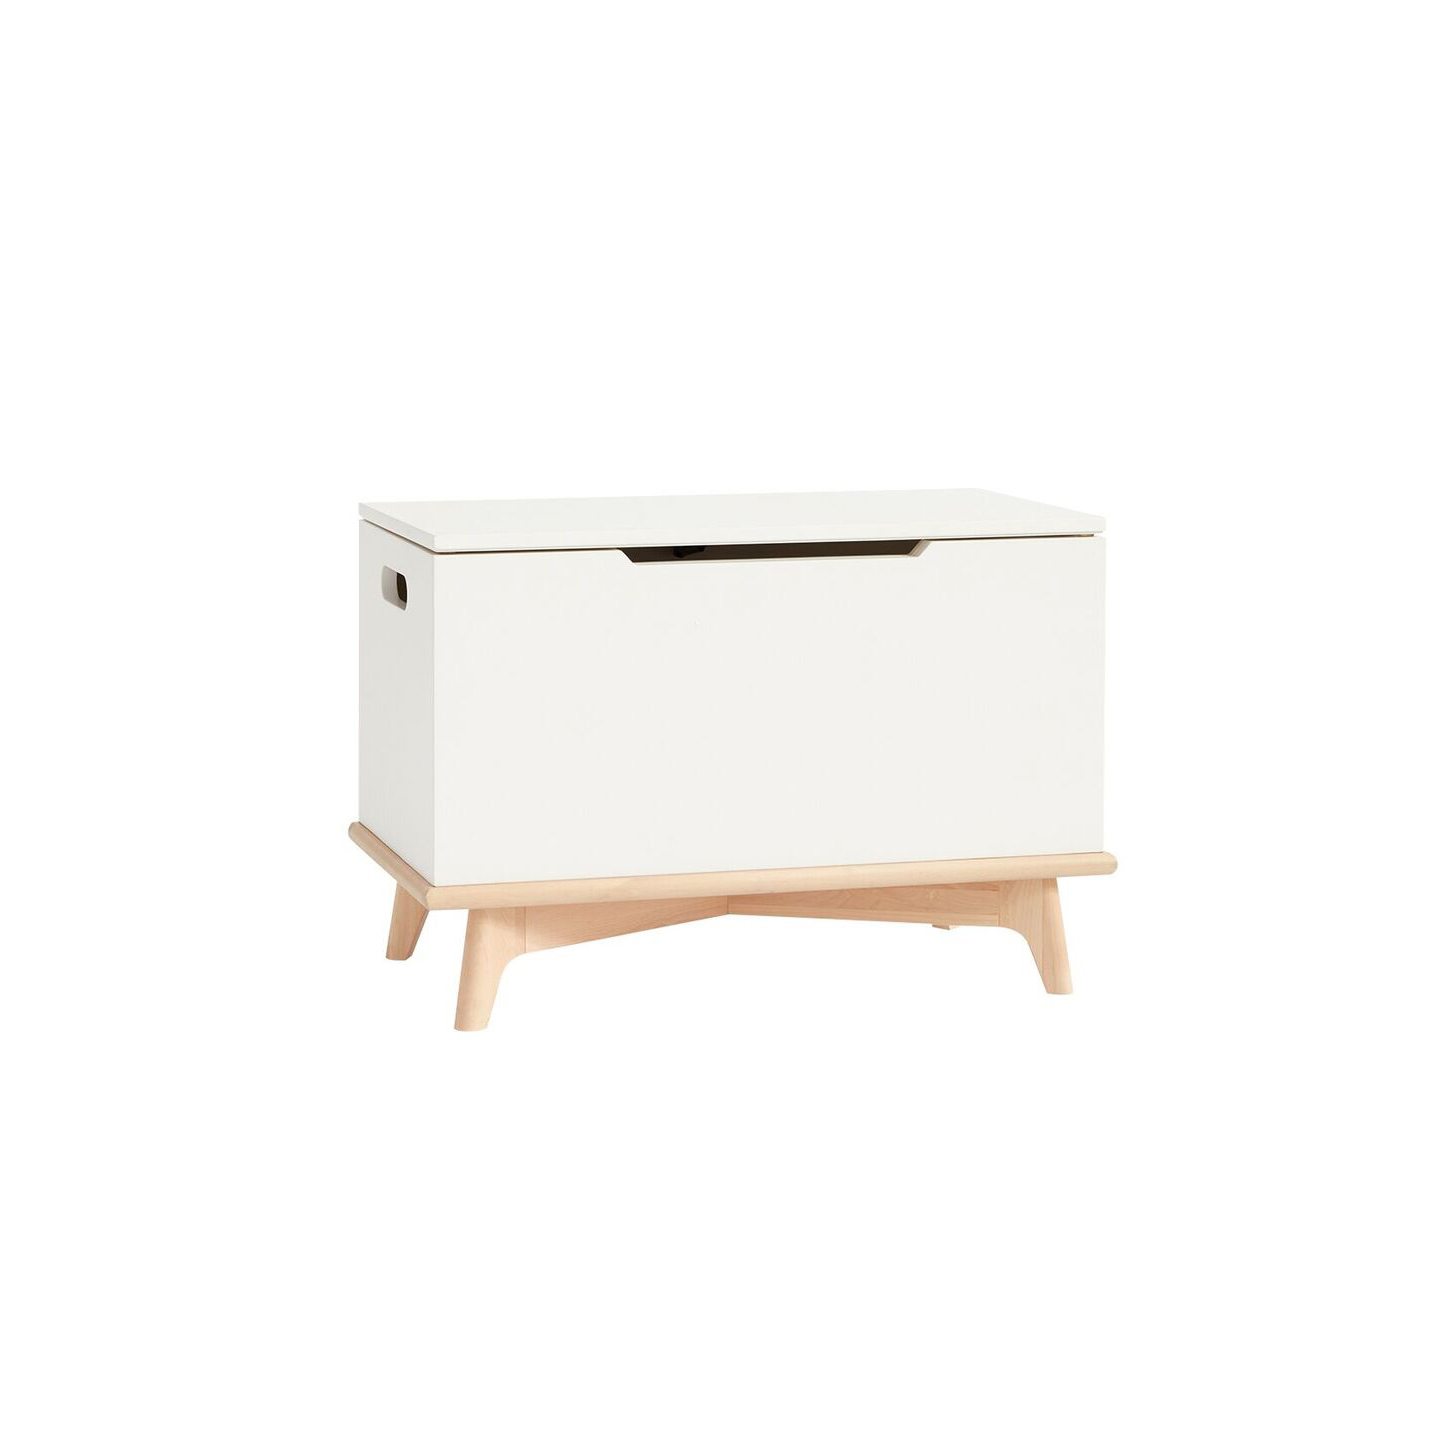 Pottery Barn Kids Sloan Toy Chest